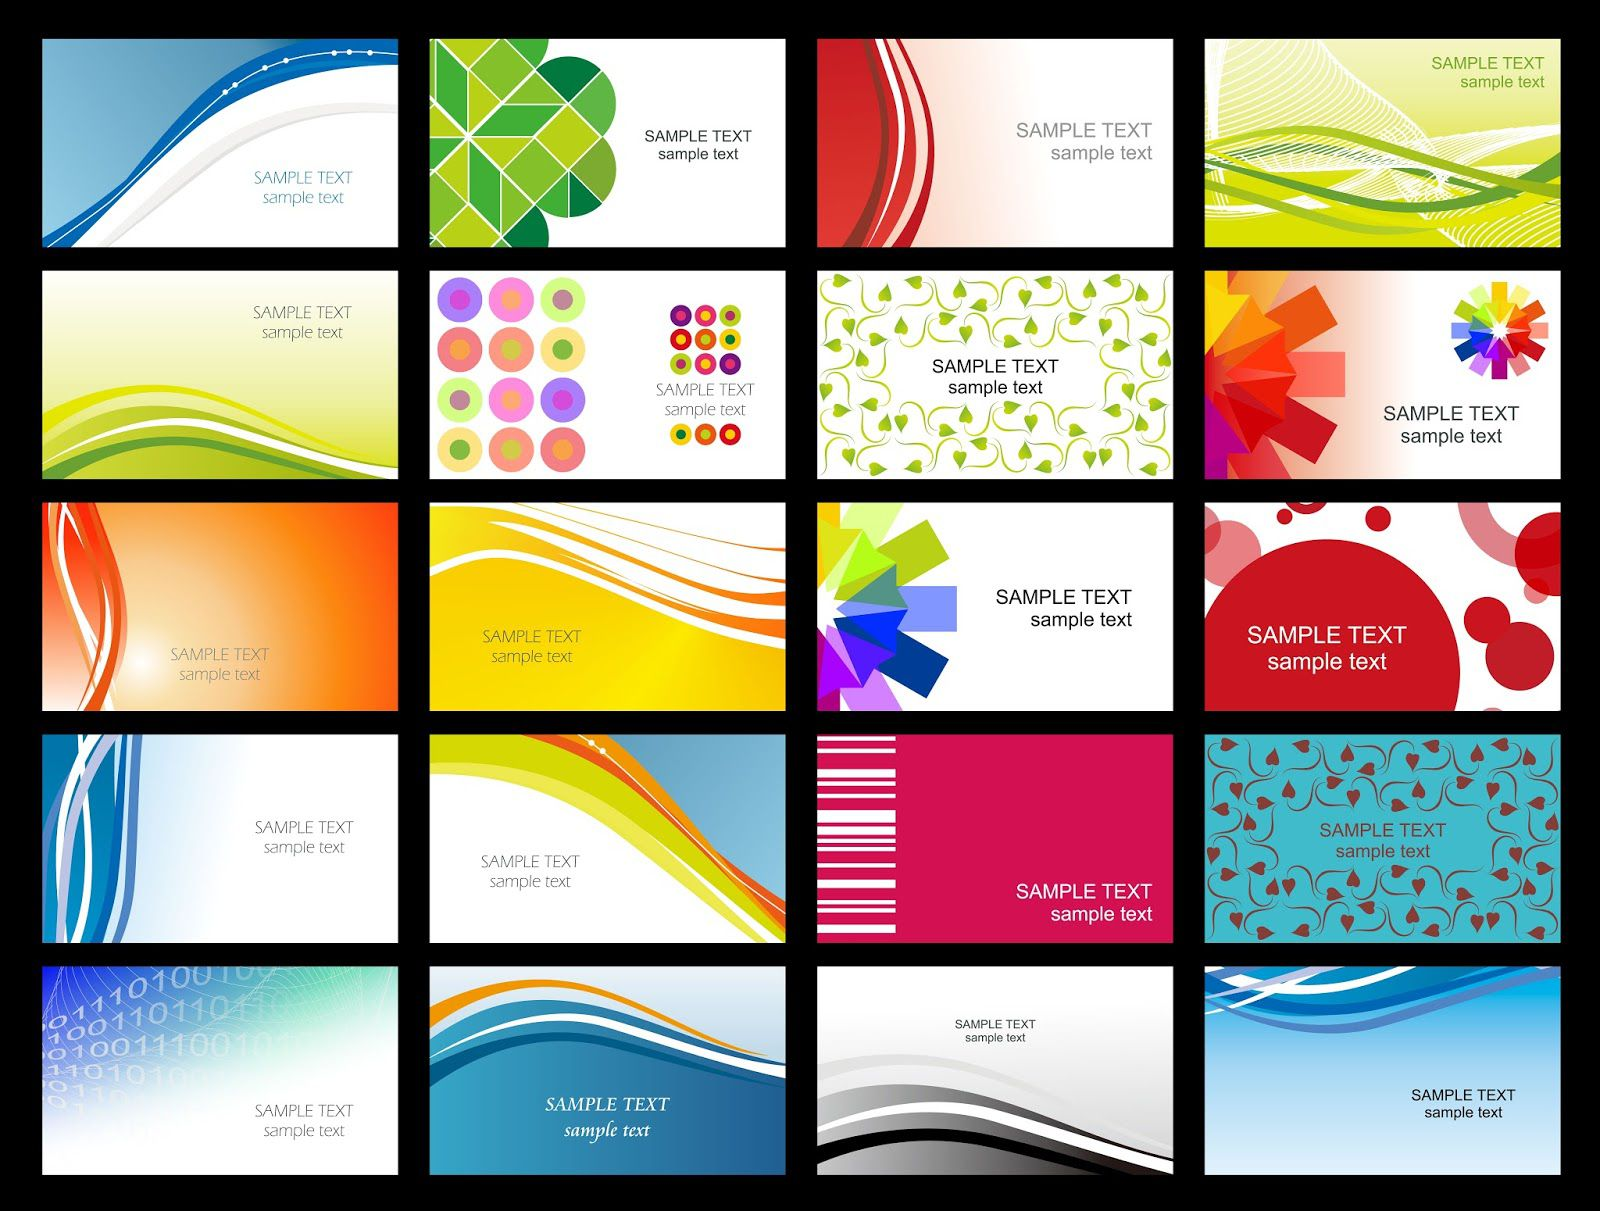 008 Striking Free Download Busines Card Template Concept  Microsoft Word Photoshop Psd Double SidedFull